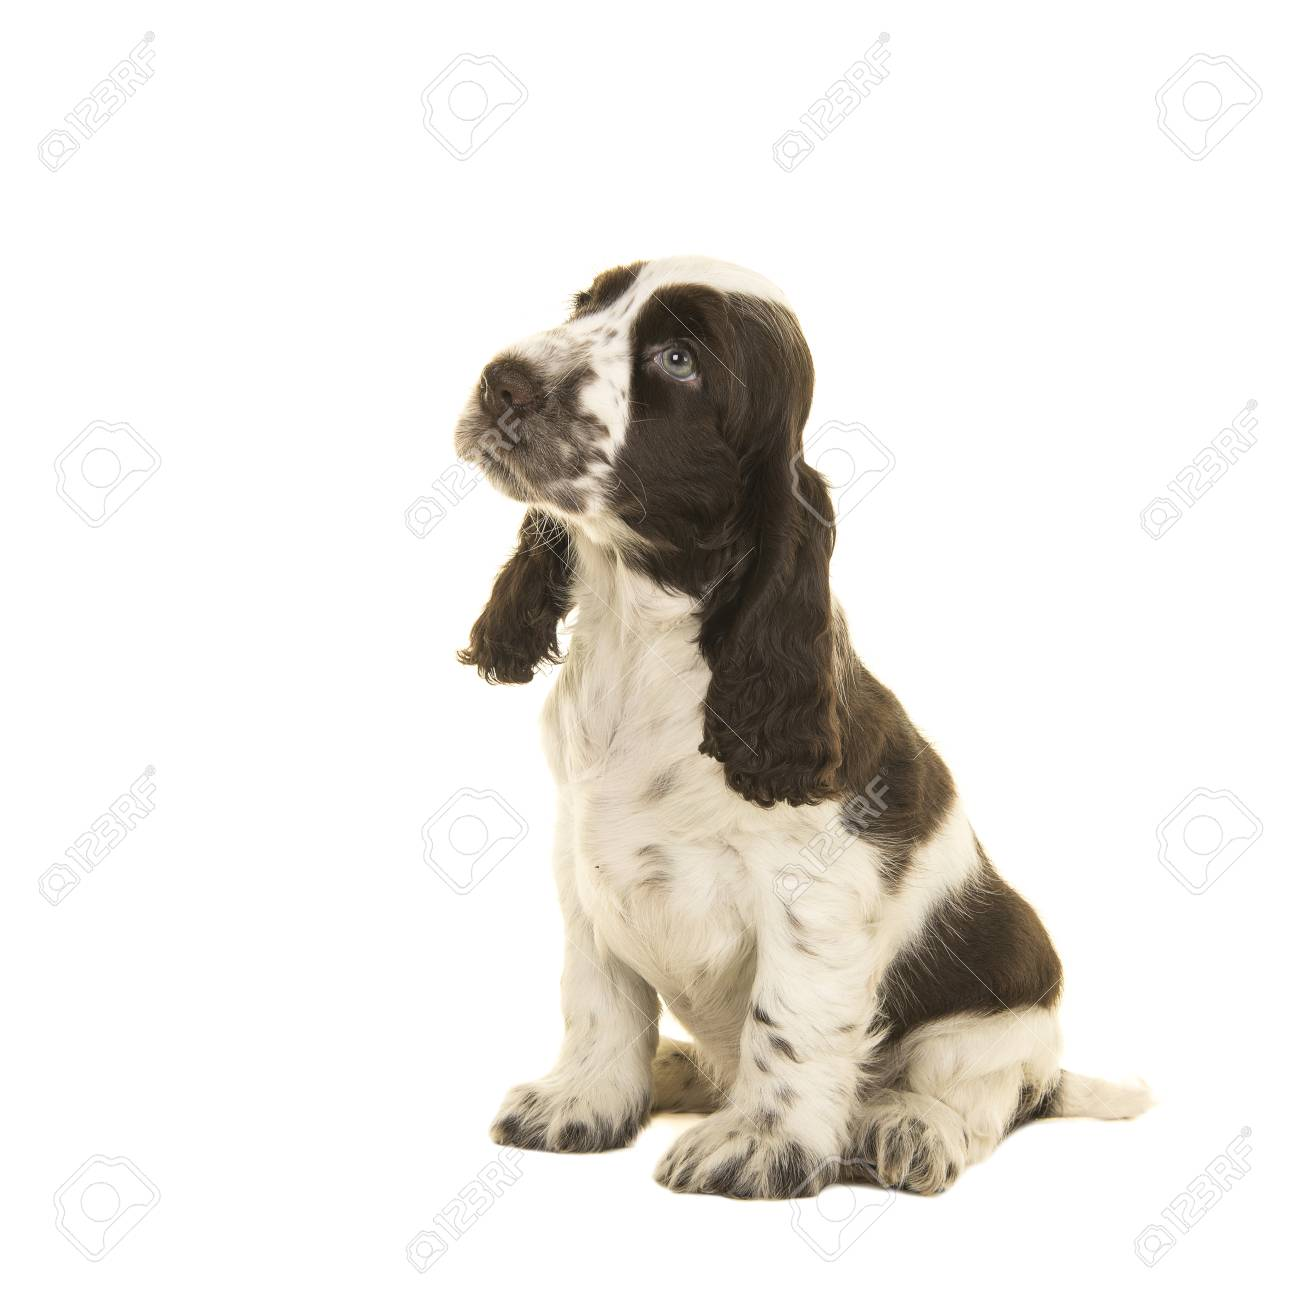 cute sitting white and chocolate brown cocker spaniel puppy dog